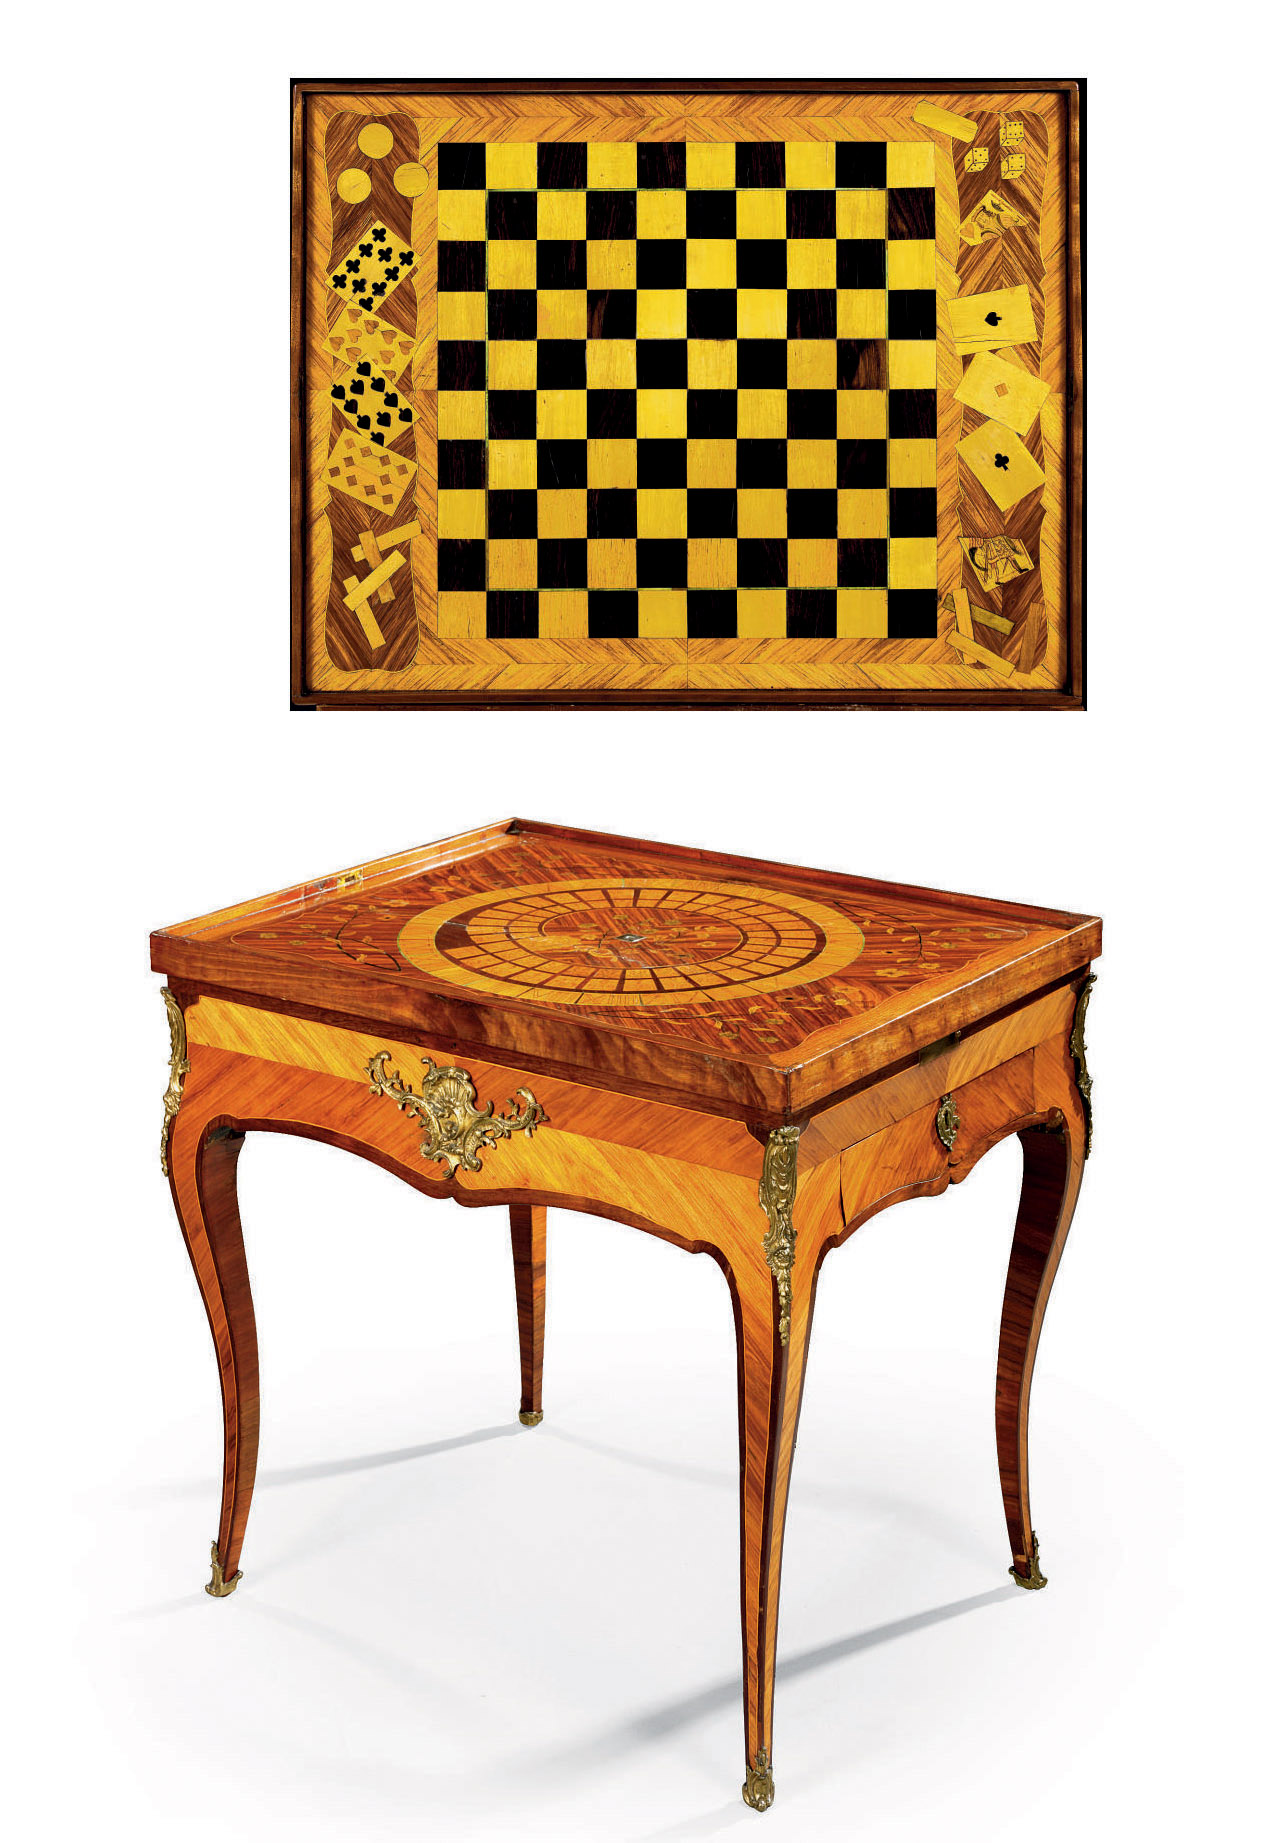 A LOUIS XV ORMOLU-MOUNTED EBONY AND IVORY-INLAID TULIPWOOD, AMARANTH AND PARQUETRY GAMES TABLE